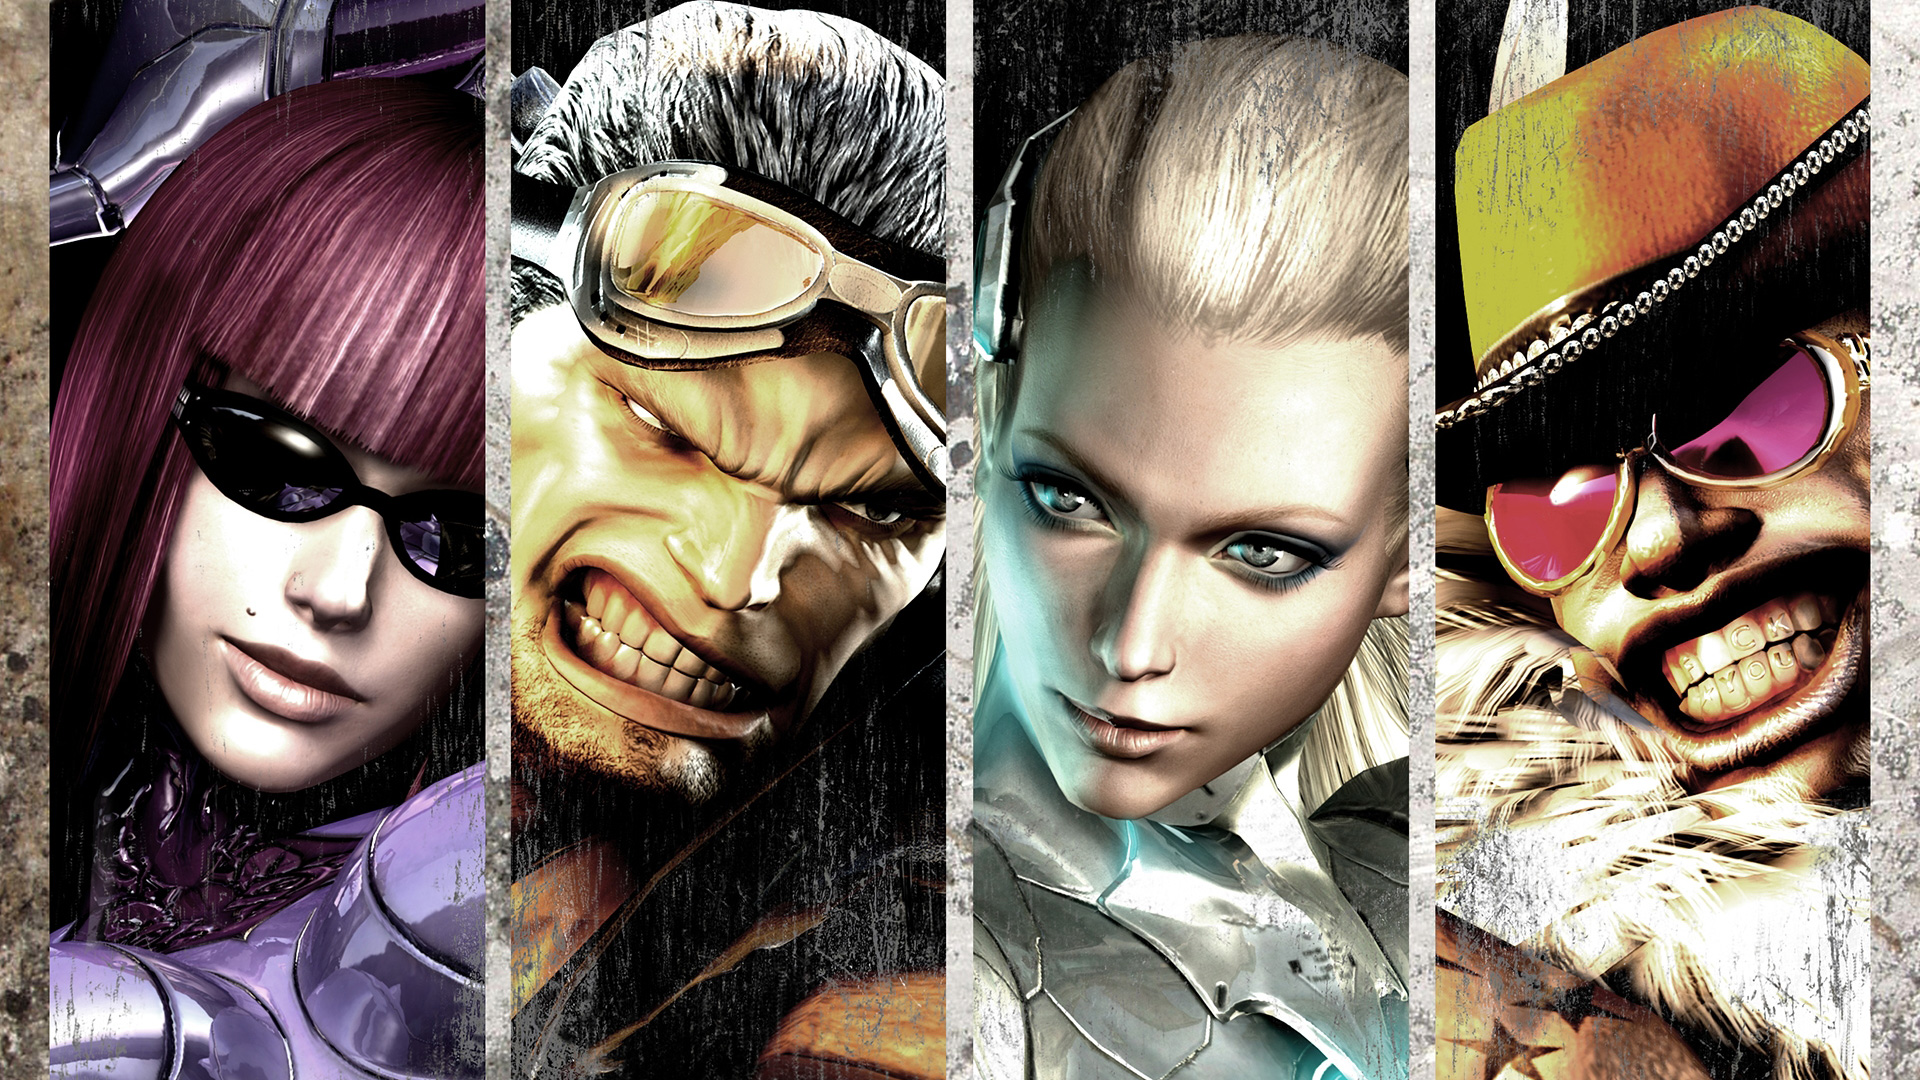 Anarchy Reigns wallpaper 10